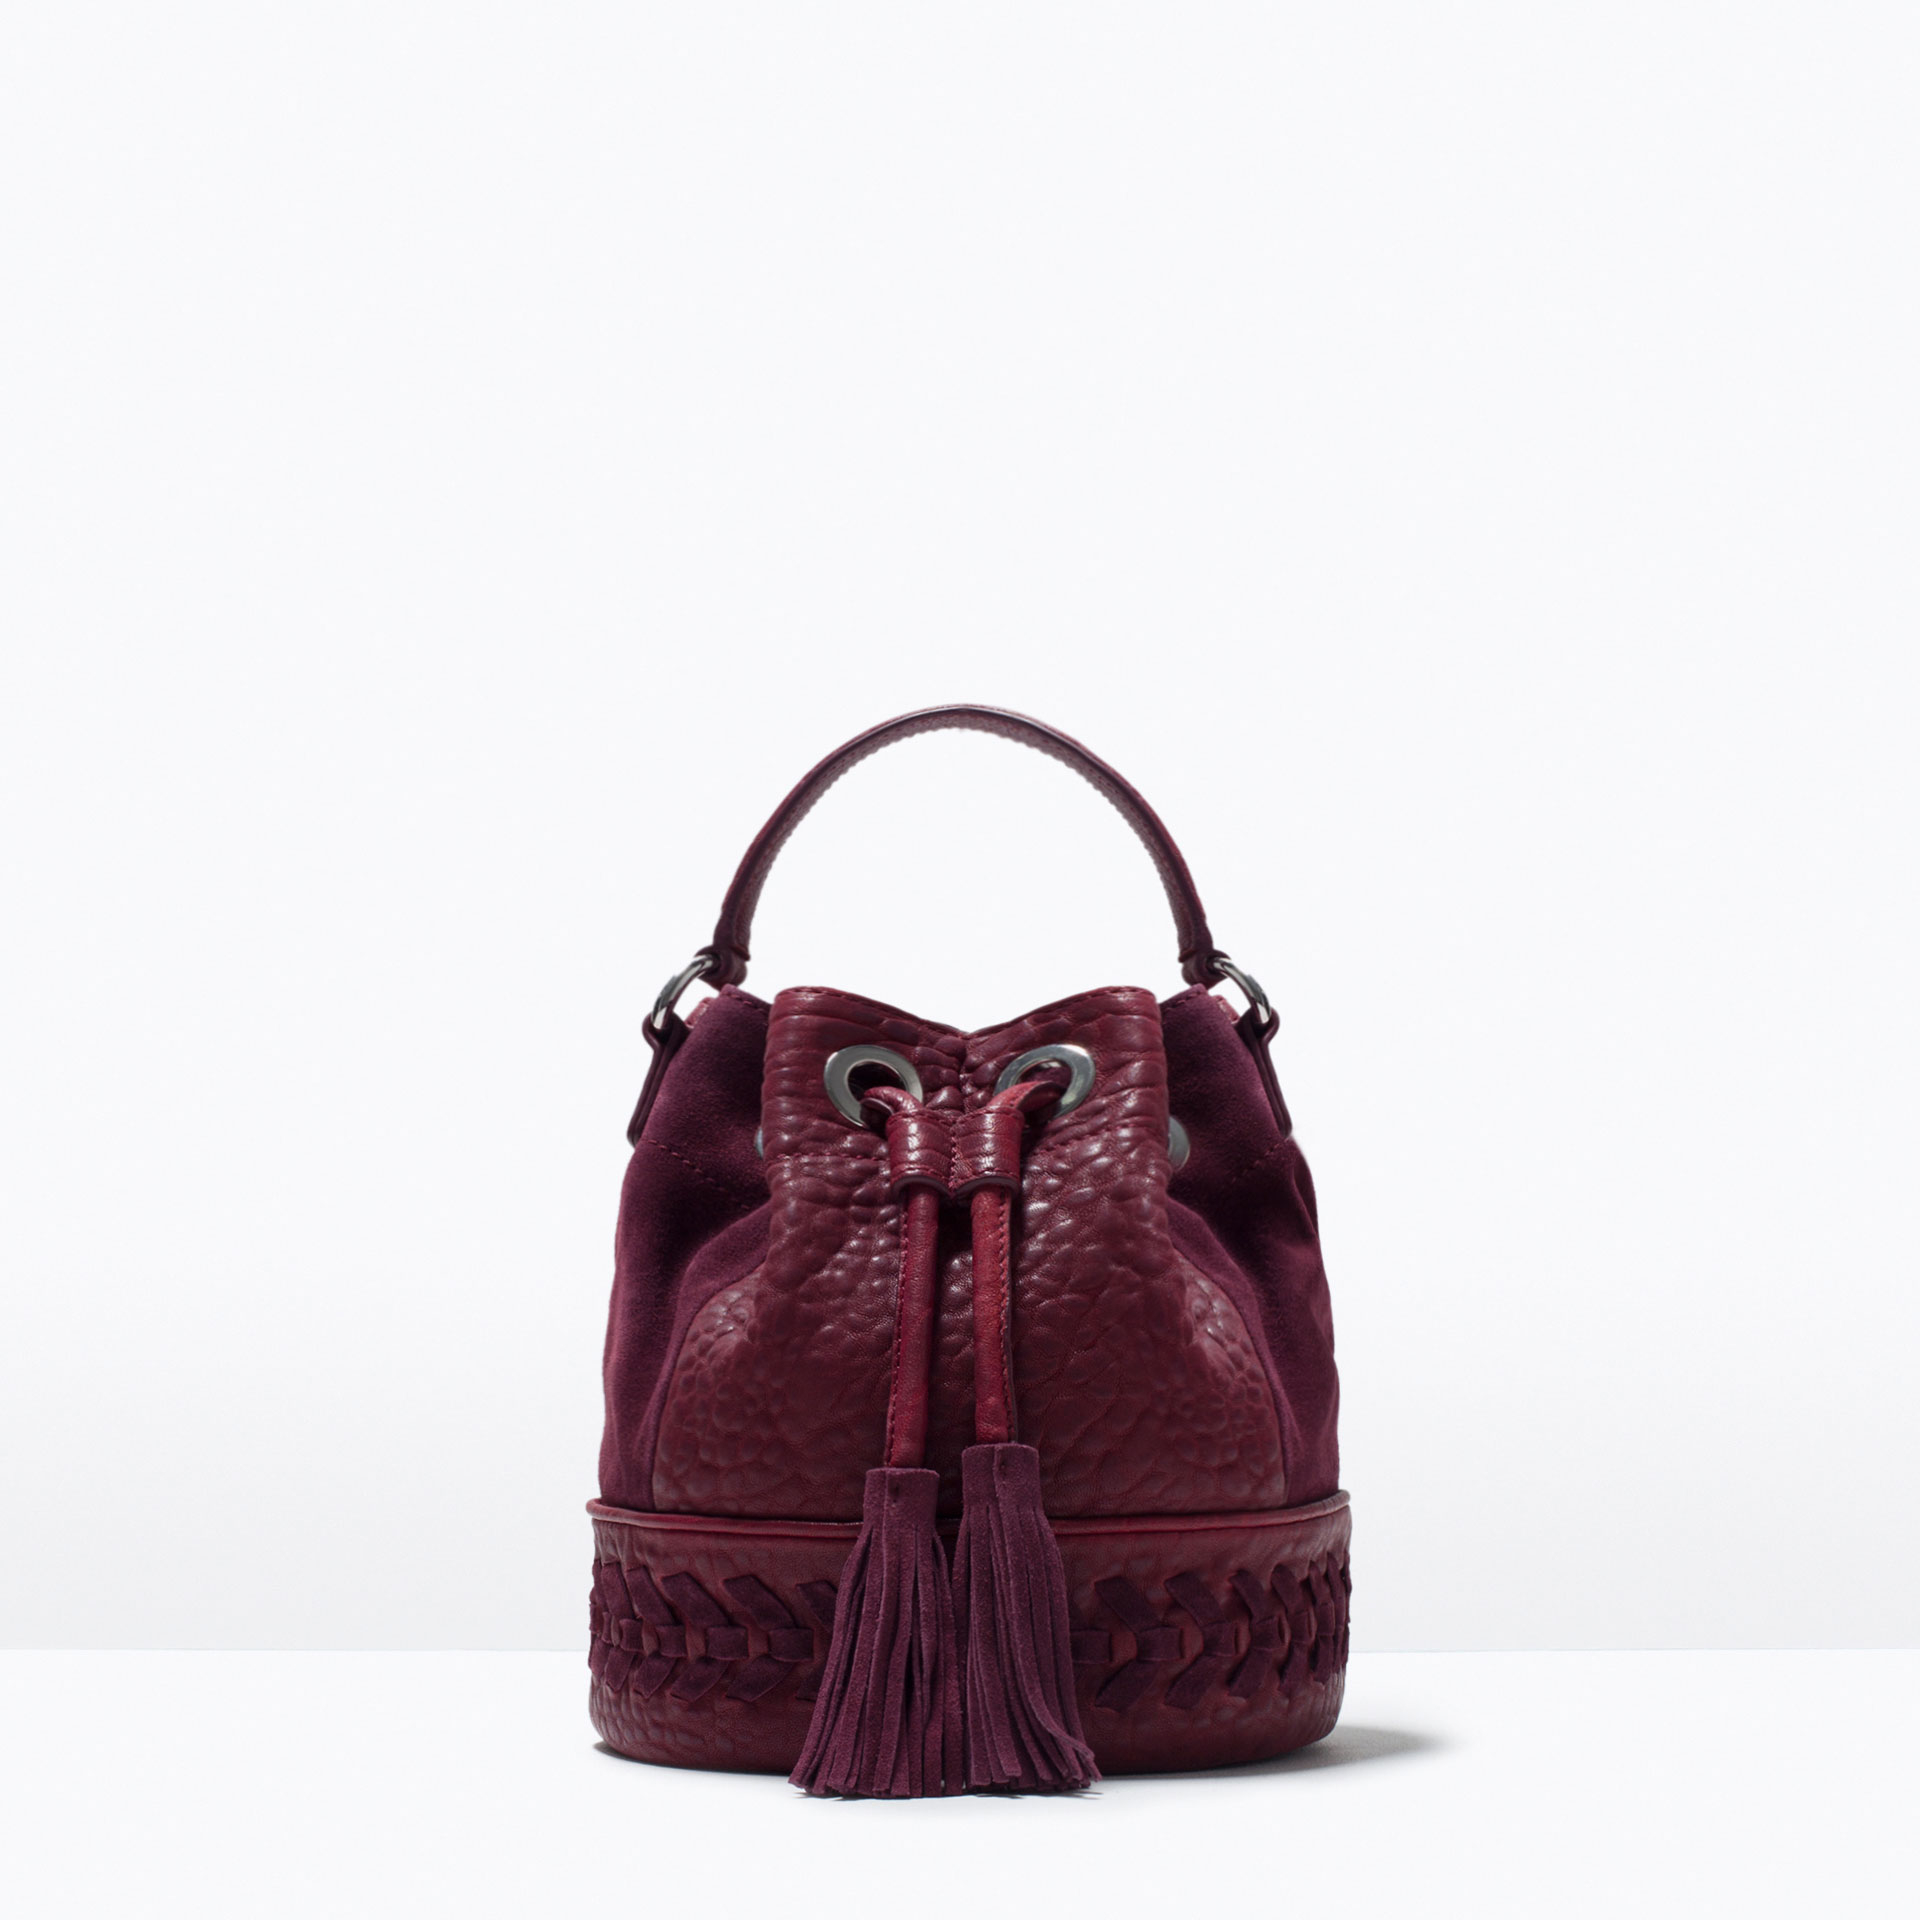 Zara Woven Leather Drawstring Bag in Purple | Lyst